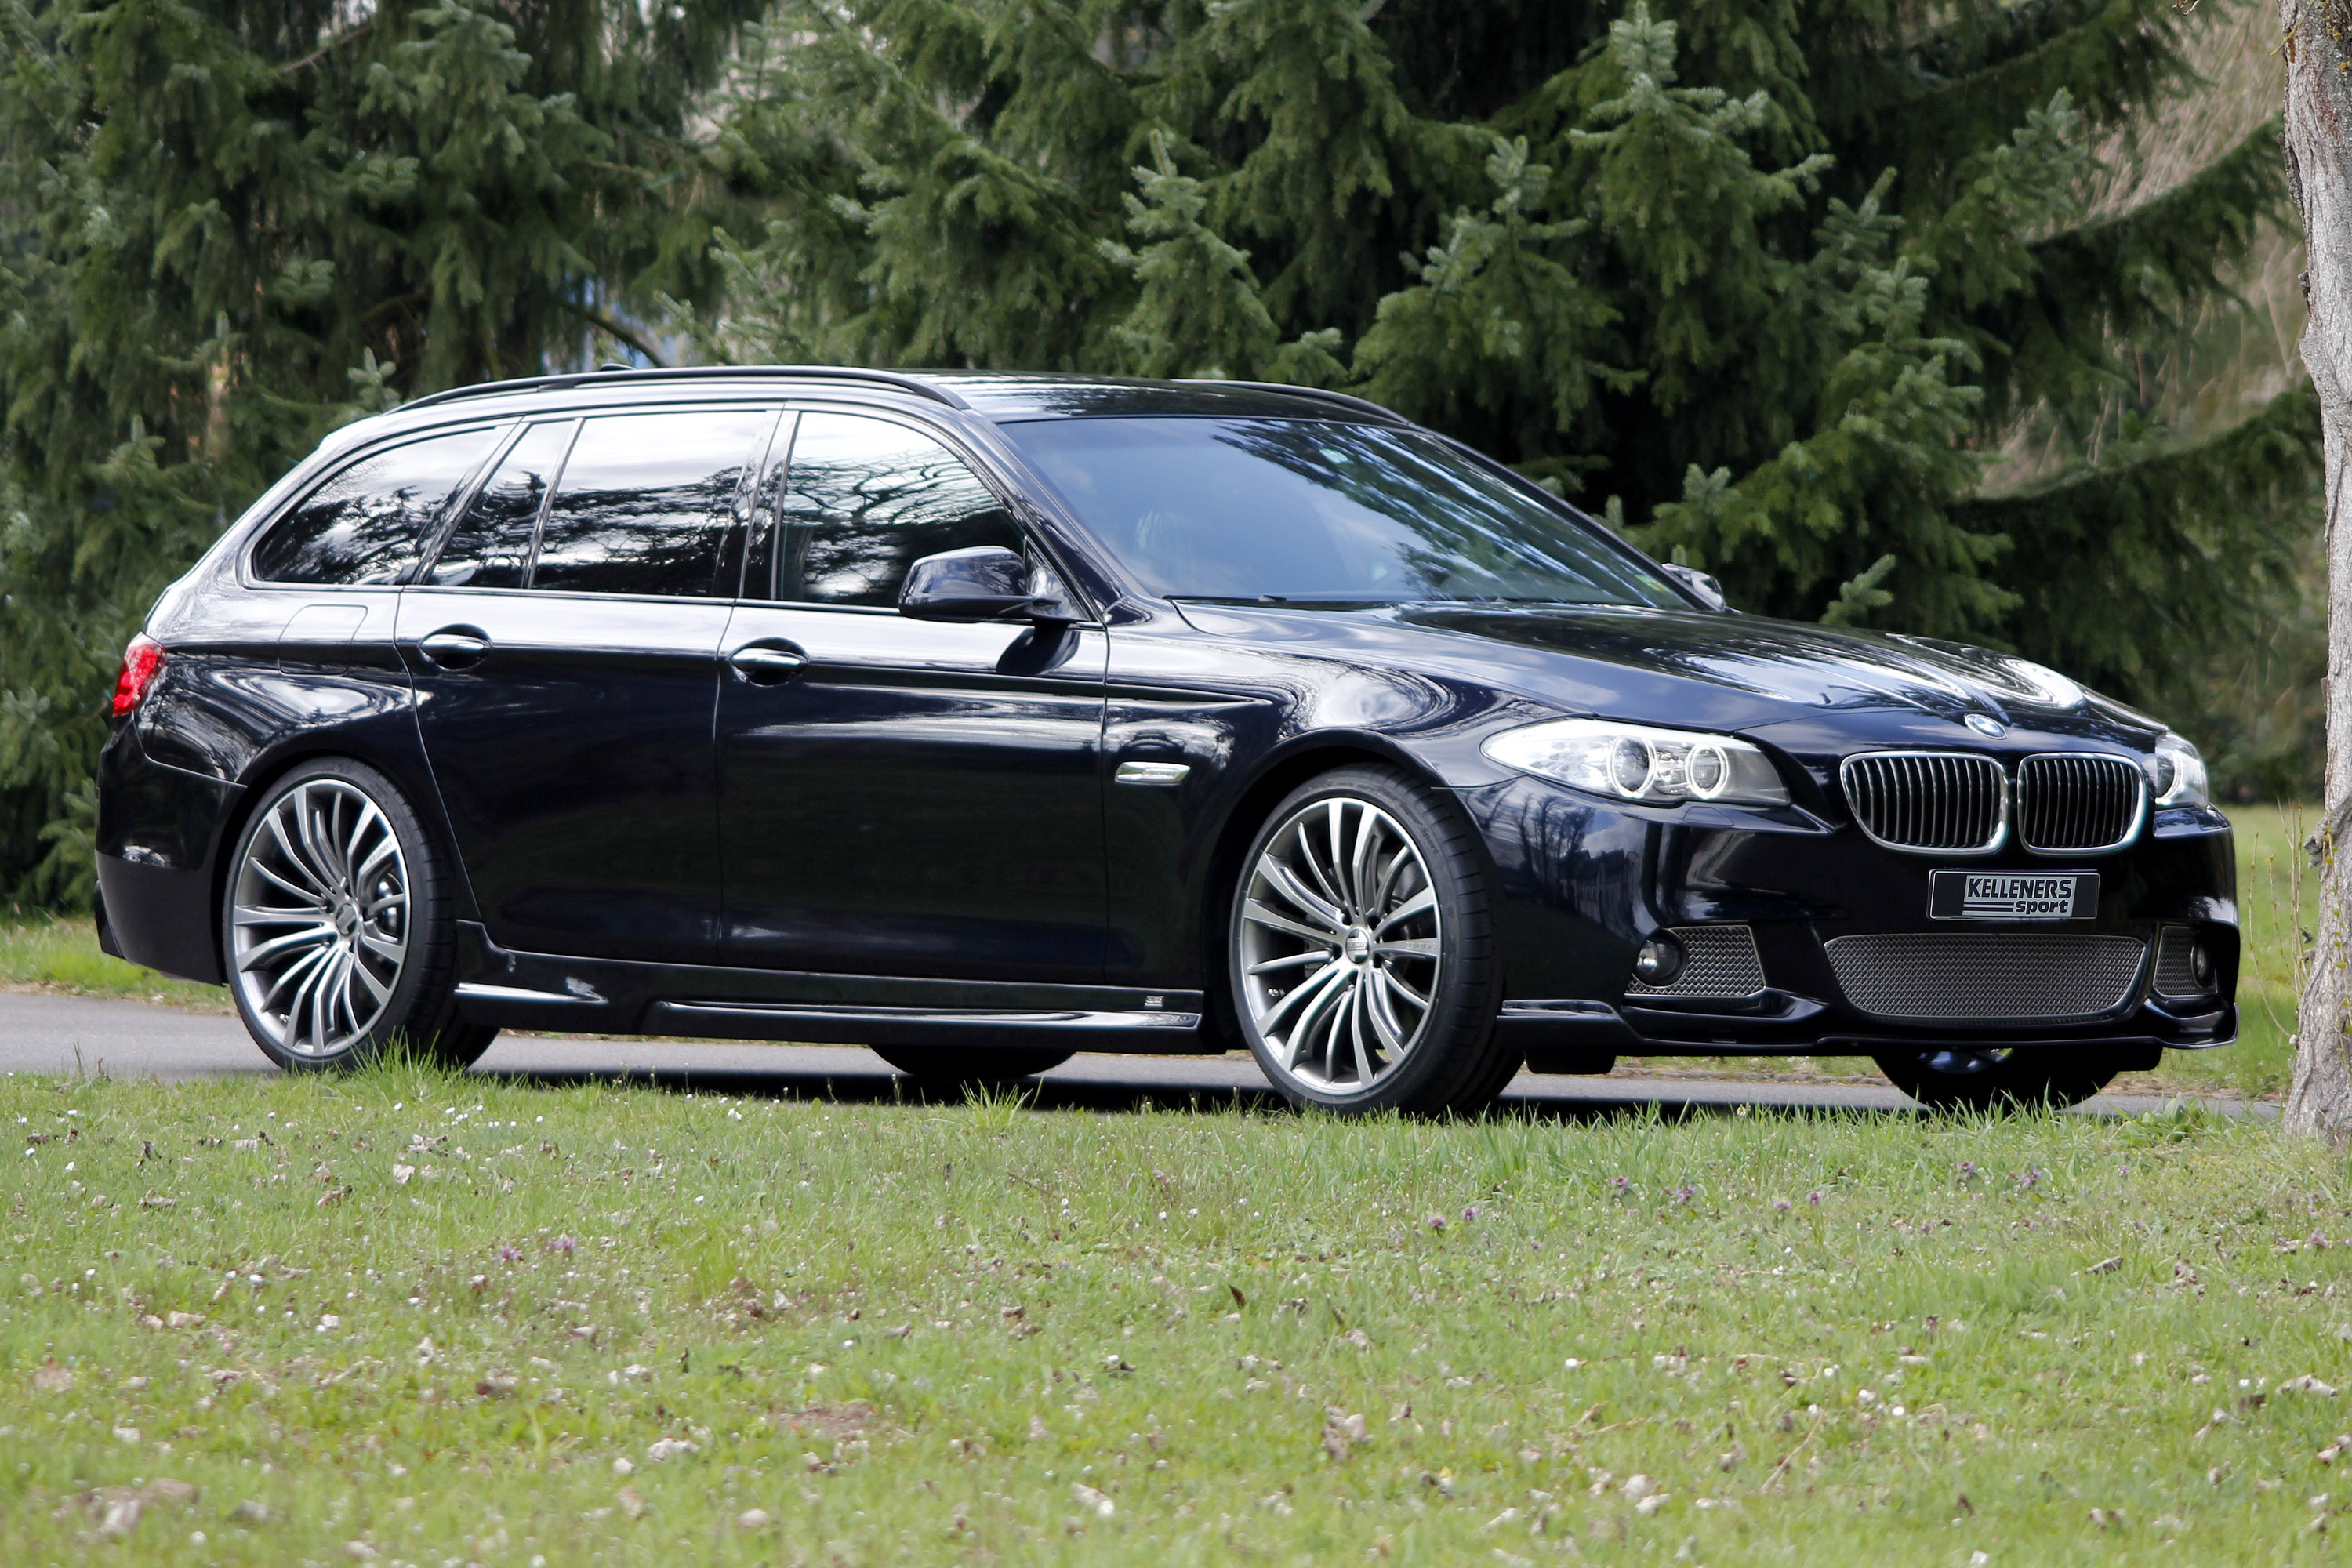 Bmw Série 5 Sport bmw 5 series m sport with vossen wheels bmw